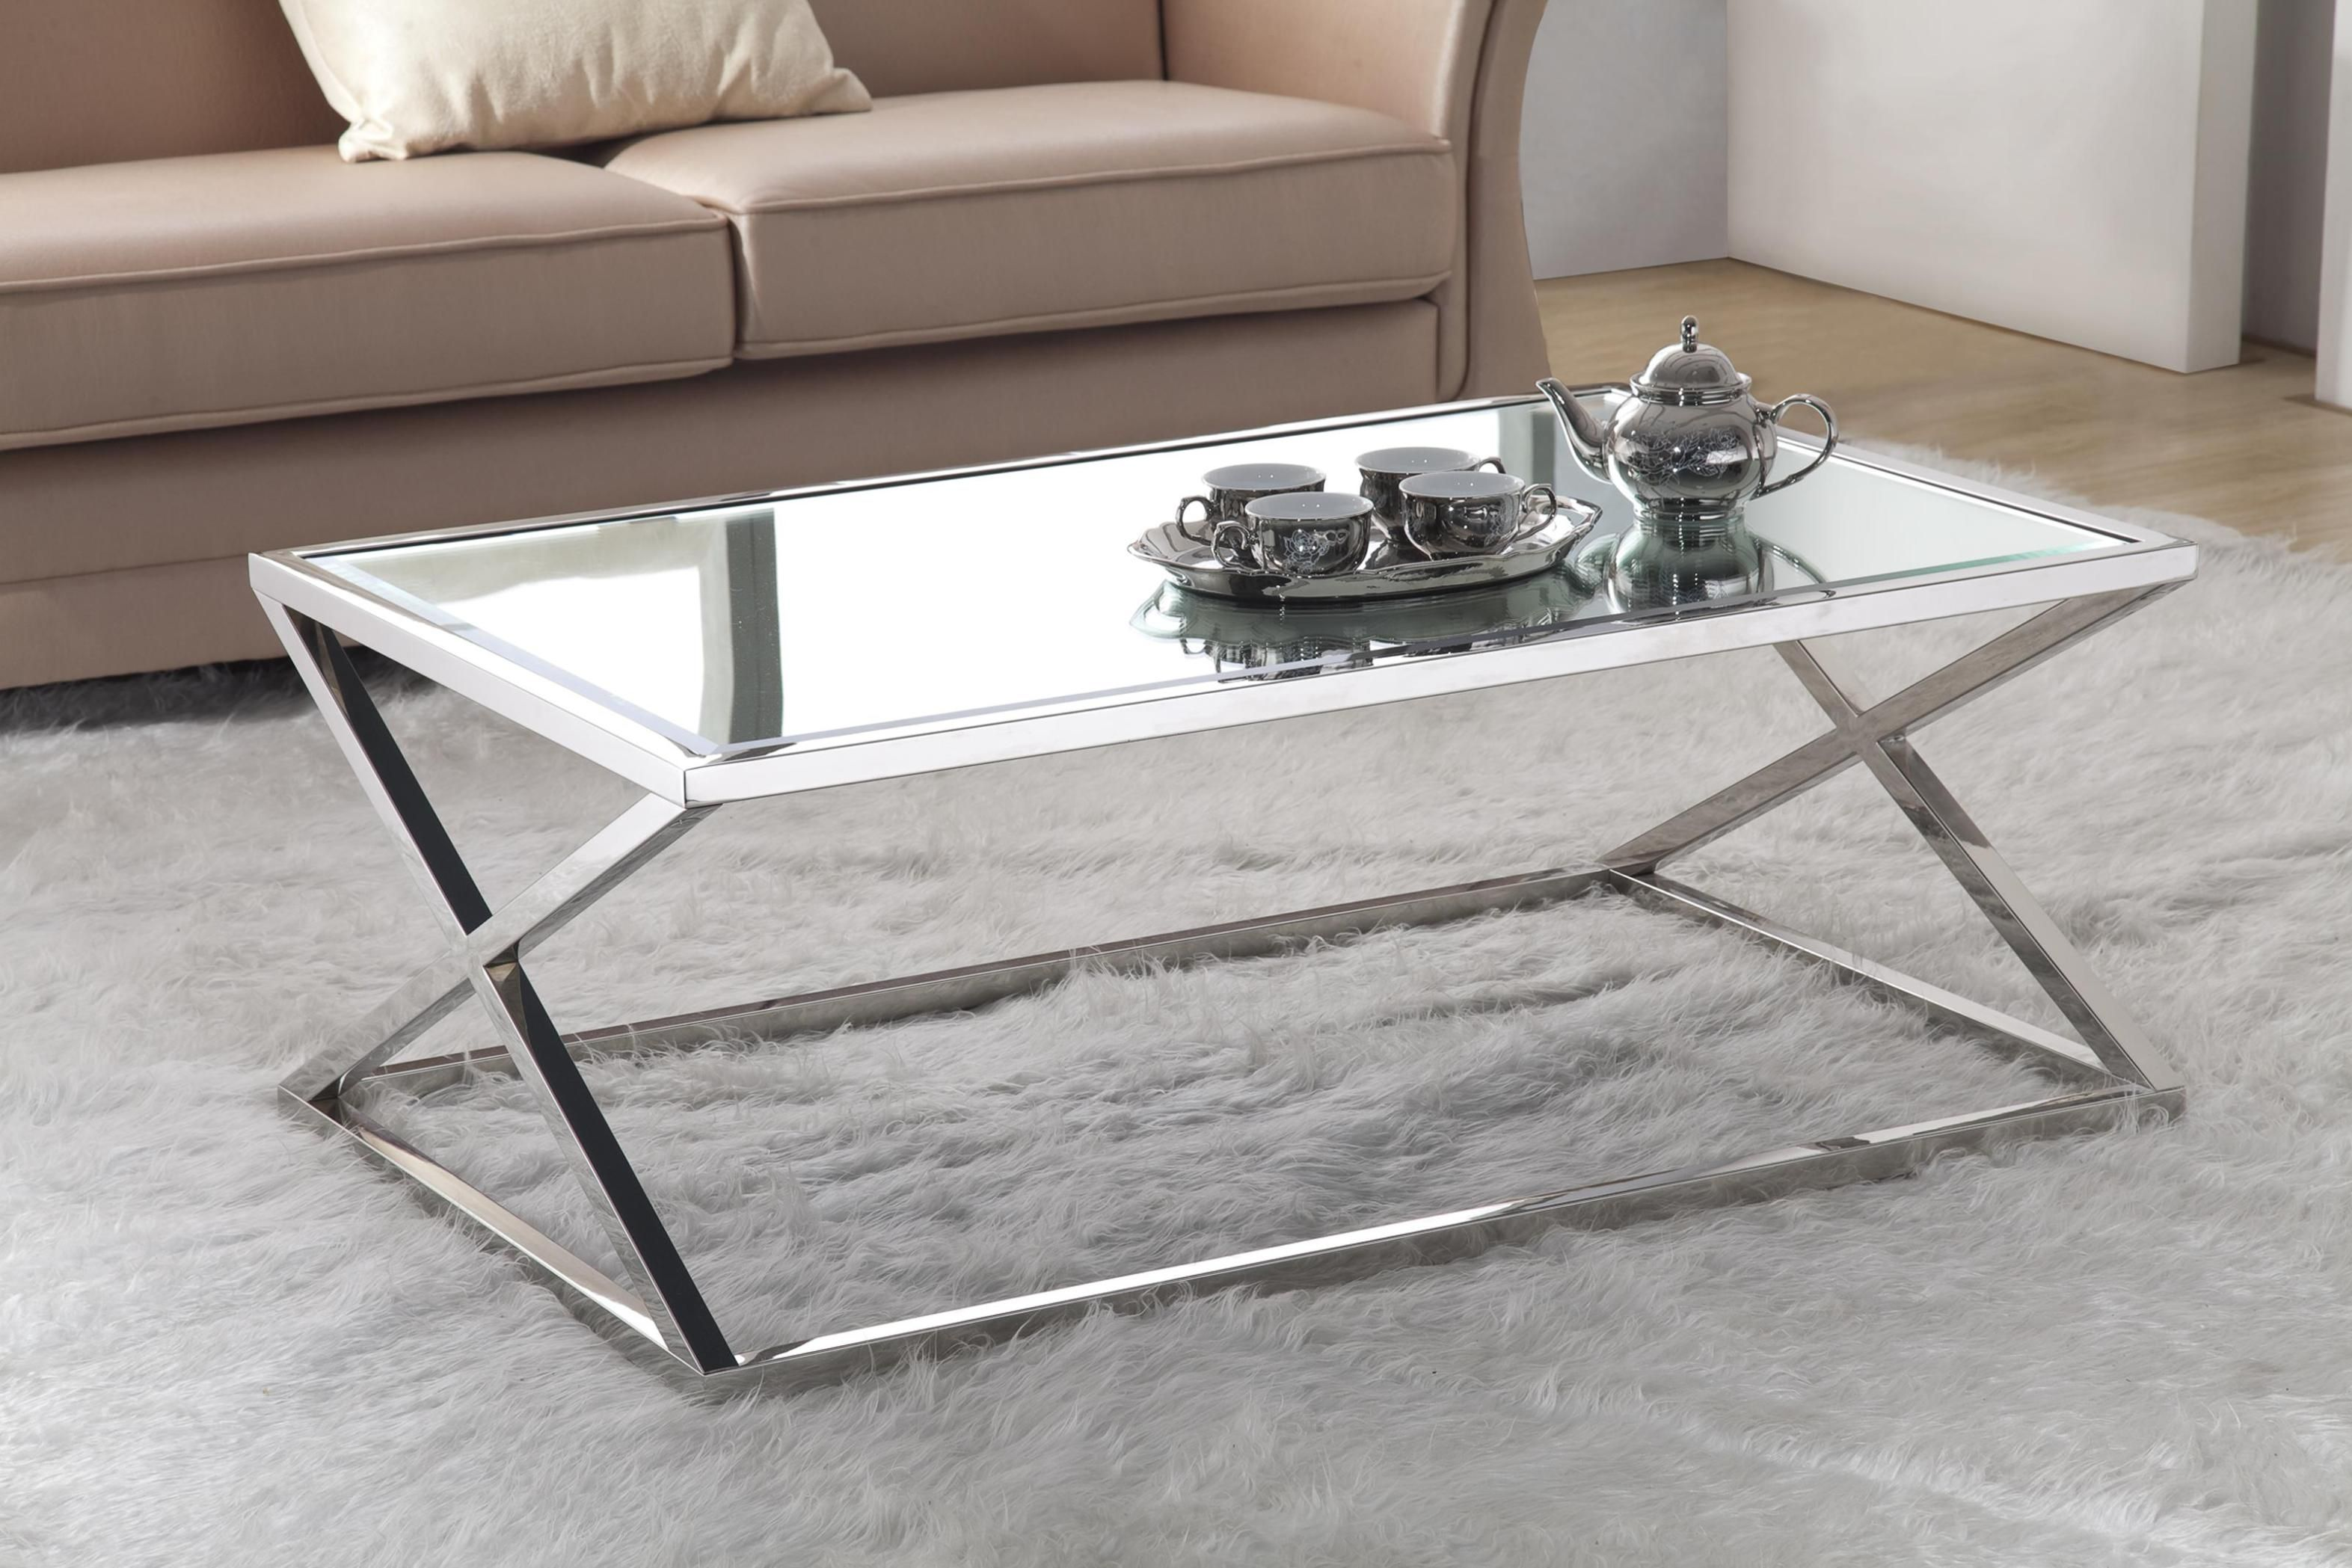 Coffee Table Glass Coffee Table Metal Legs Metal Coffee Table Legs With Glass And Metal Stainless Steel Coffee Table Silver Coffee Table Mirrored Coffee Tables